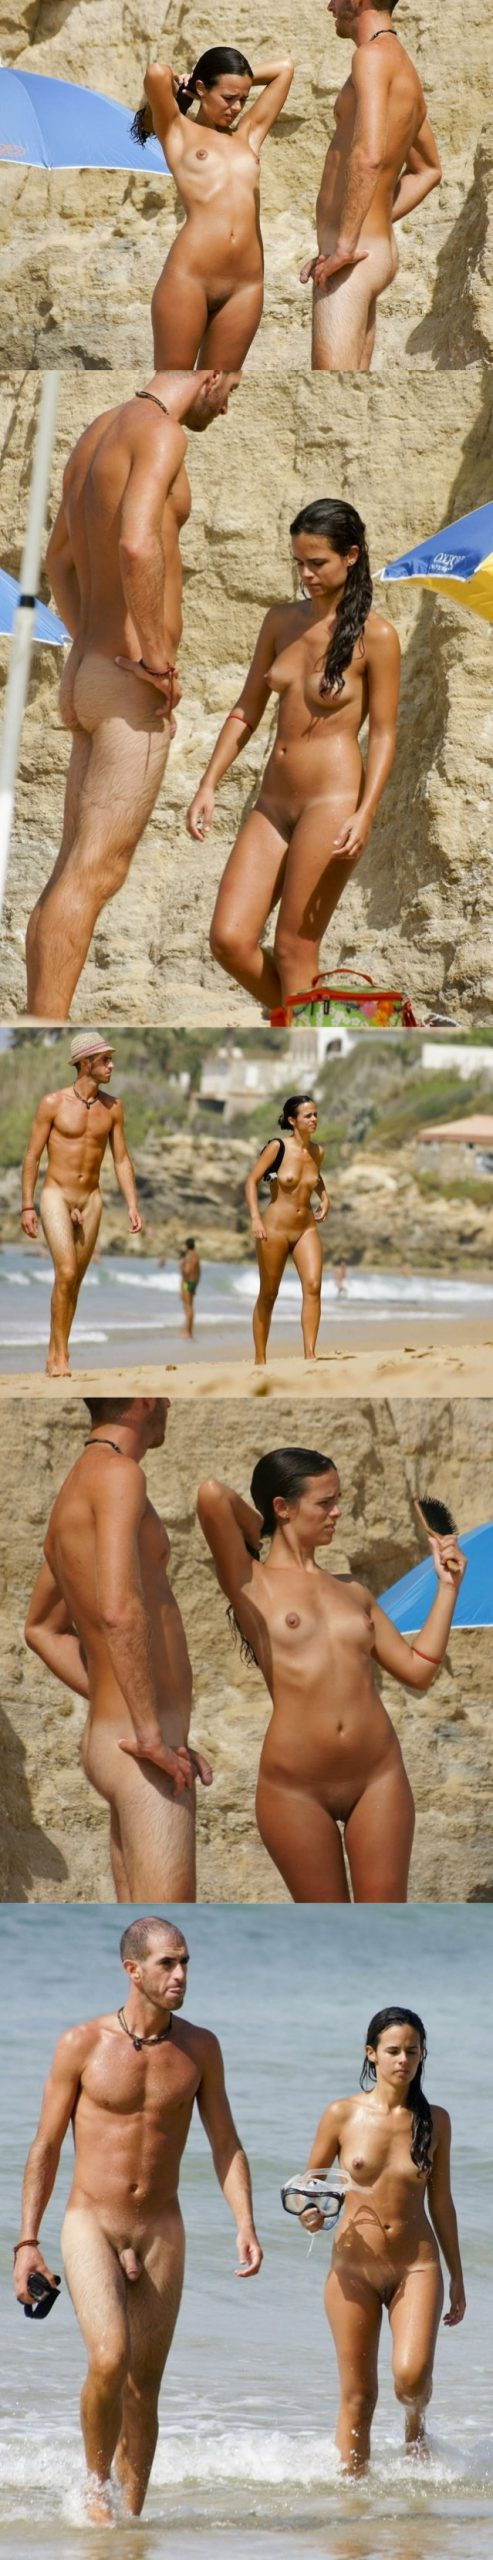 straight nudist man caught at the beach